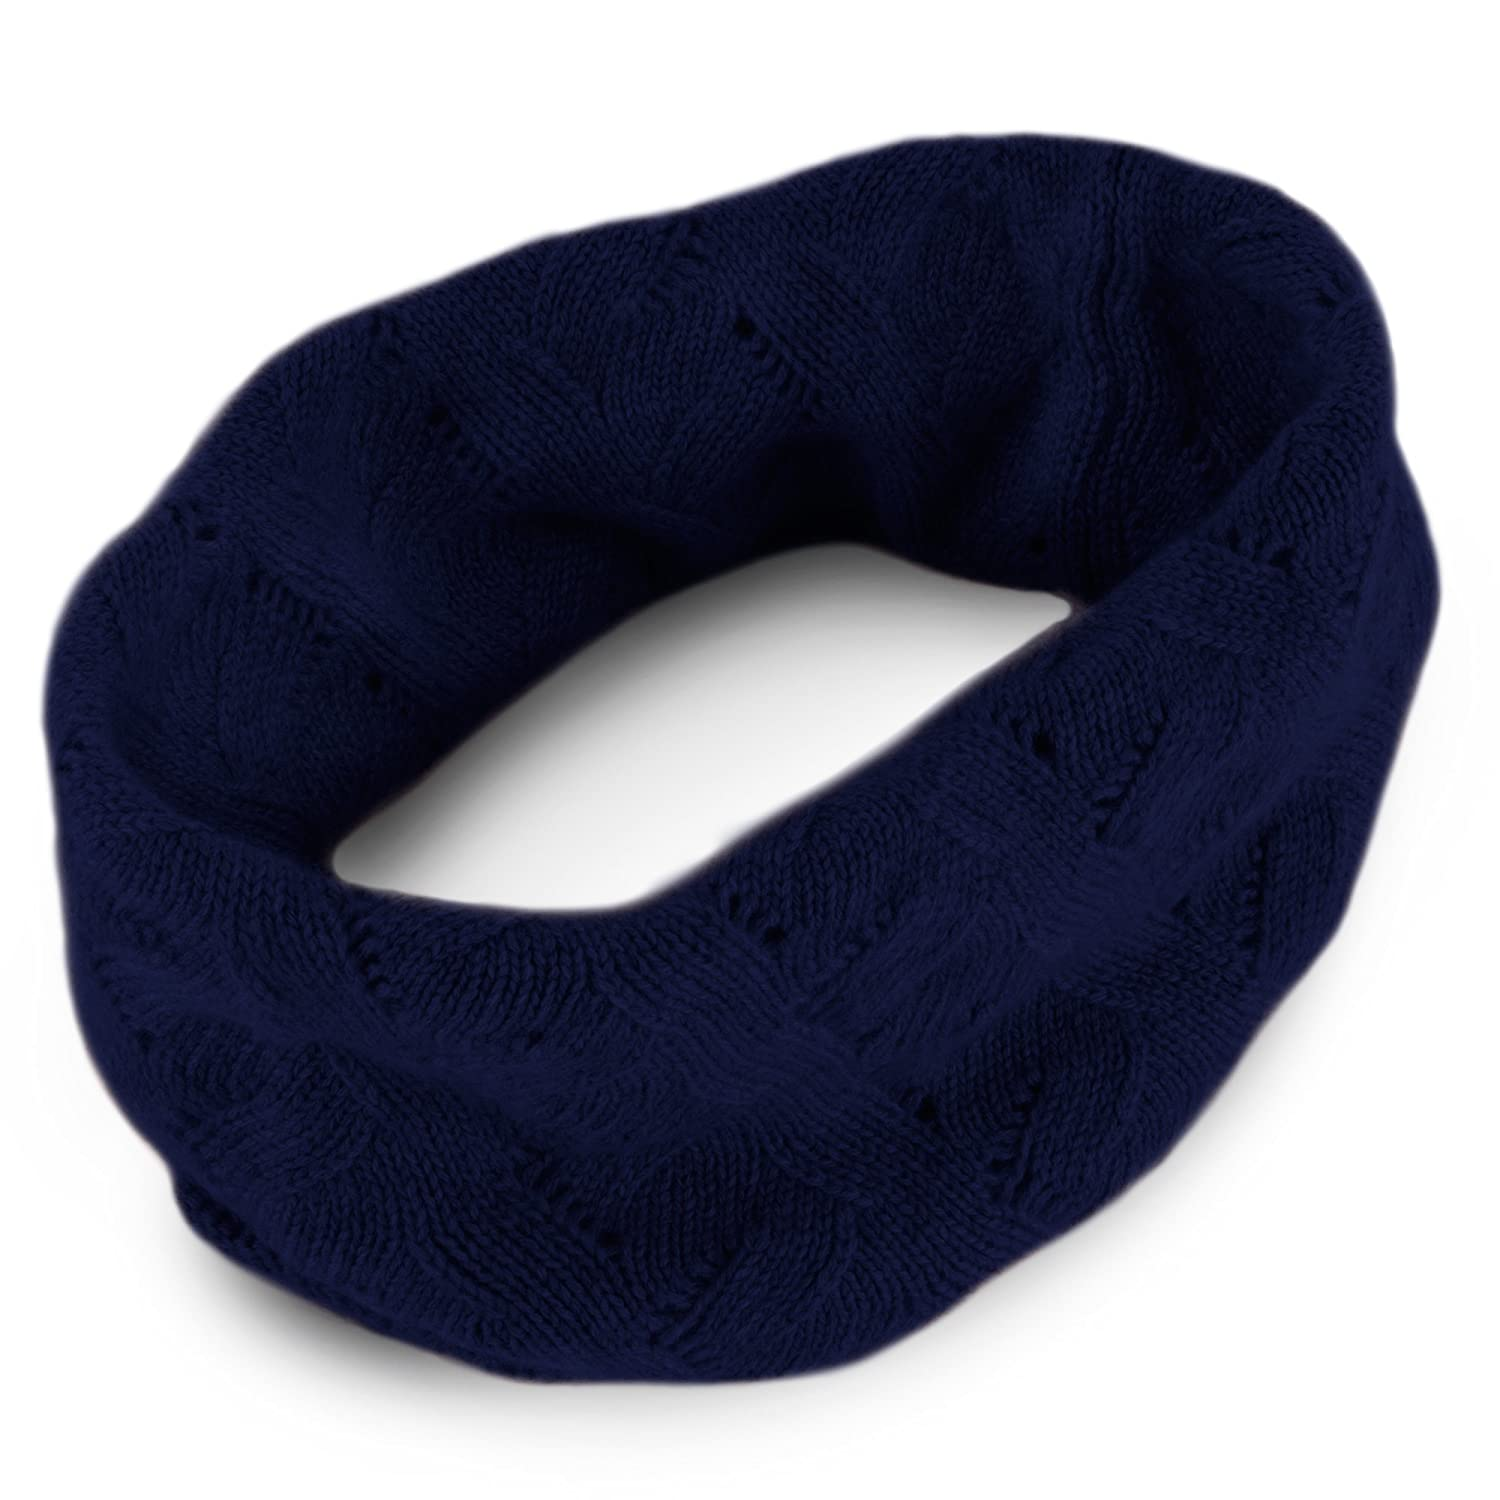 sales in novawo wool women black promotion soft solid scarf infinity s womens one at dp cashmere celeste size